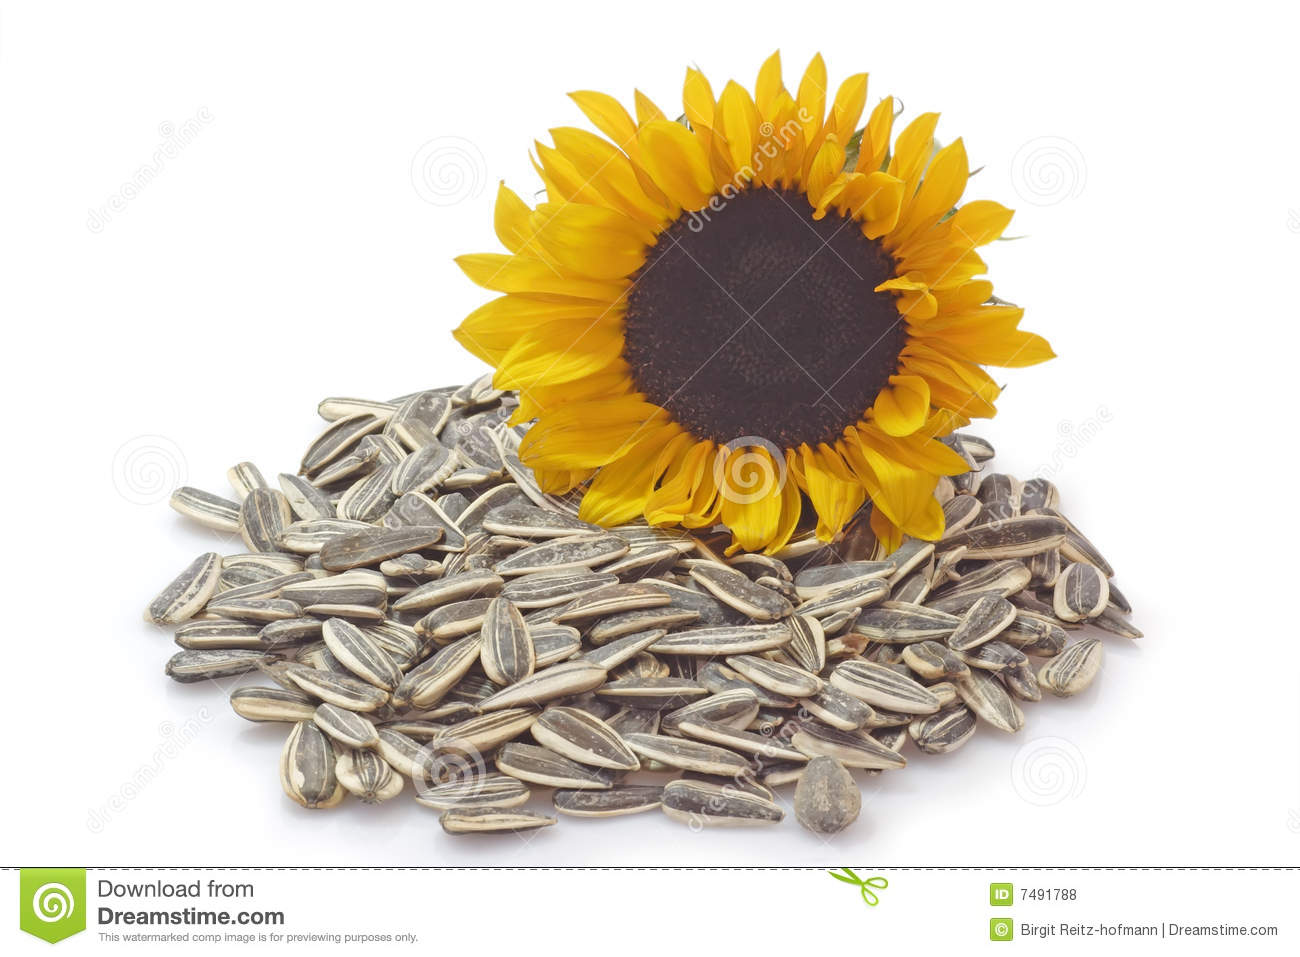 david sunflower seeds clipart - photo #10